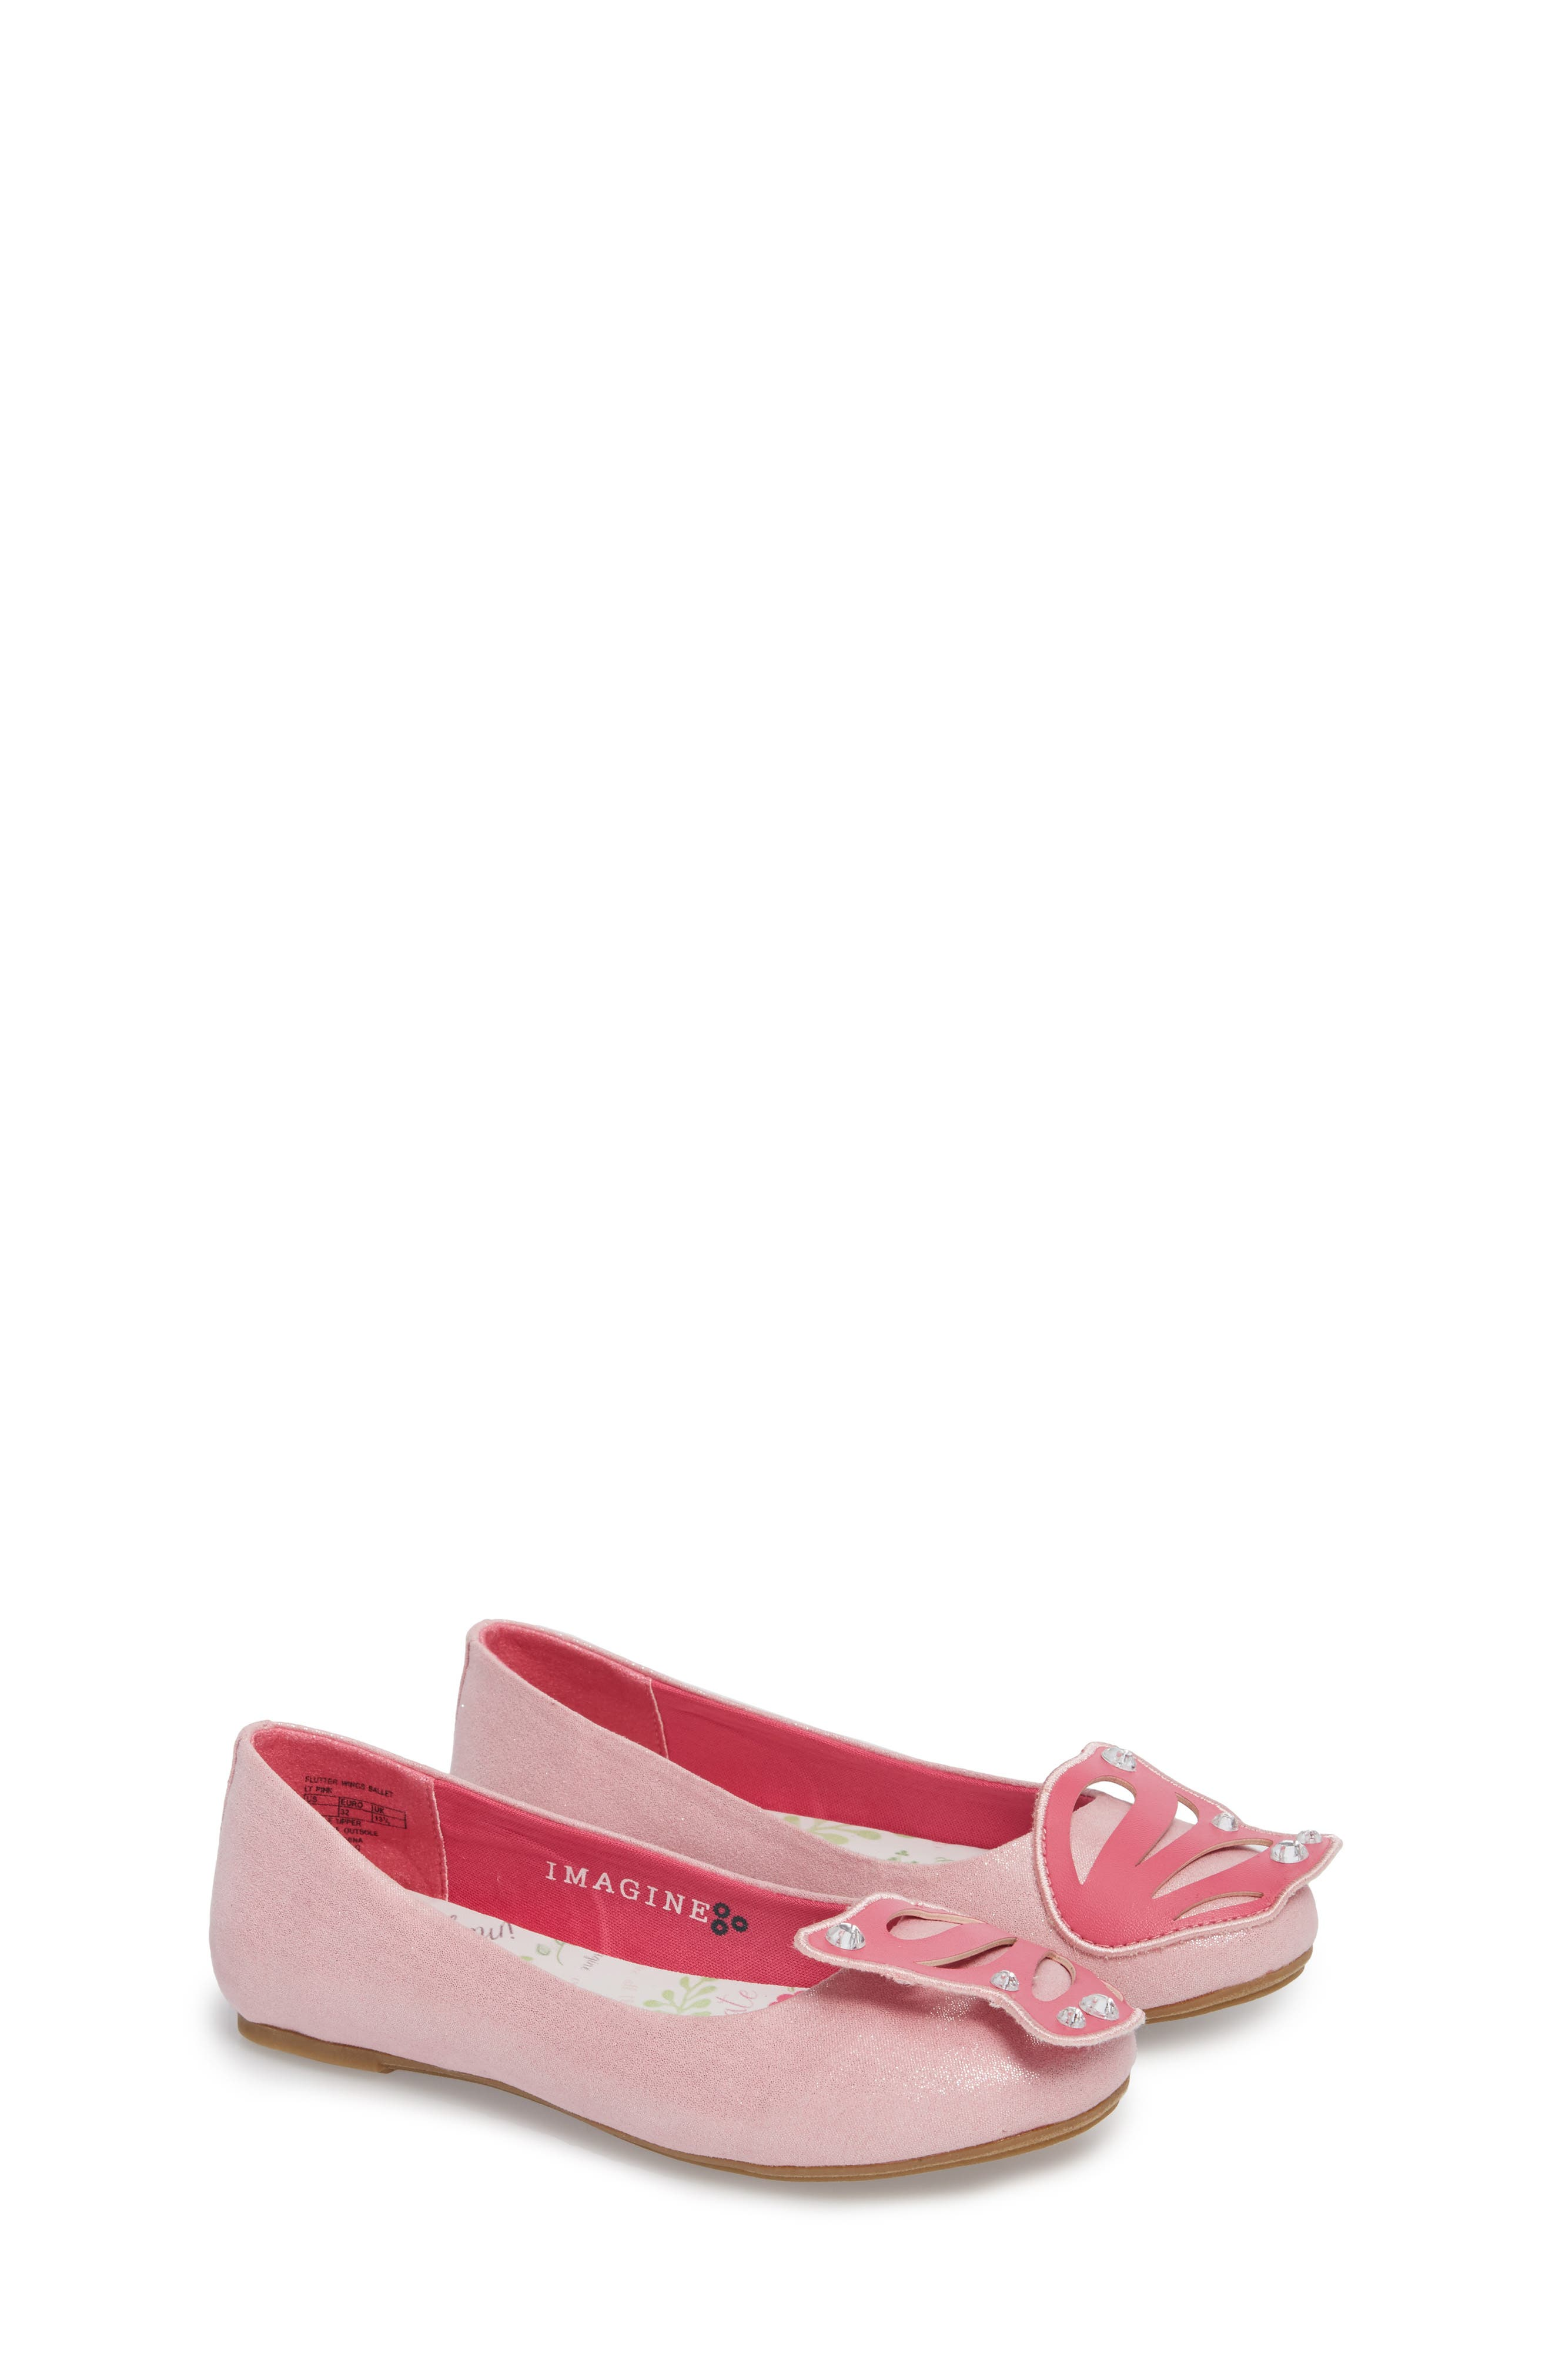 Alternate Image 1 Selected - WellieWishers by American Girl Flutter Wings Embellished Ballet Flat (Toddler, Little Kid & Big Kid)